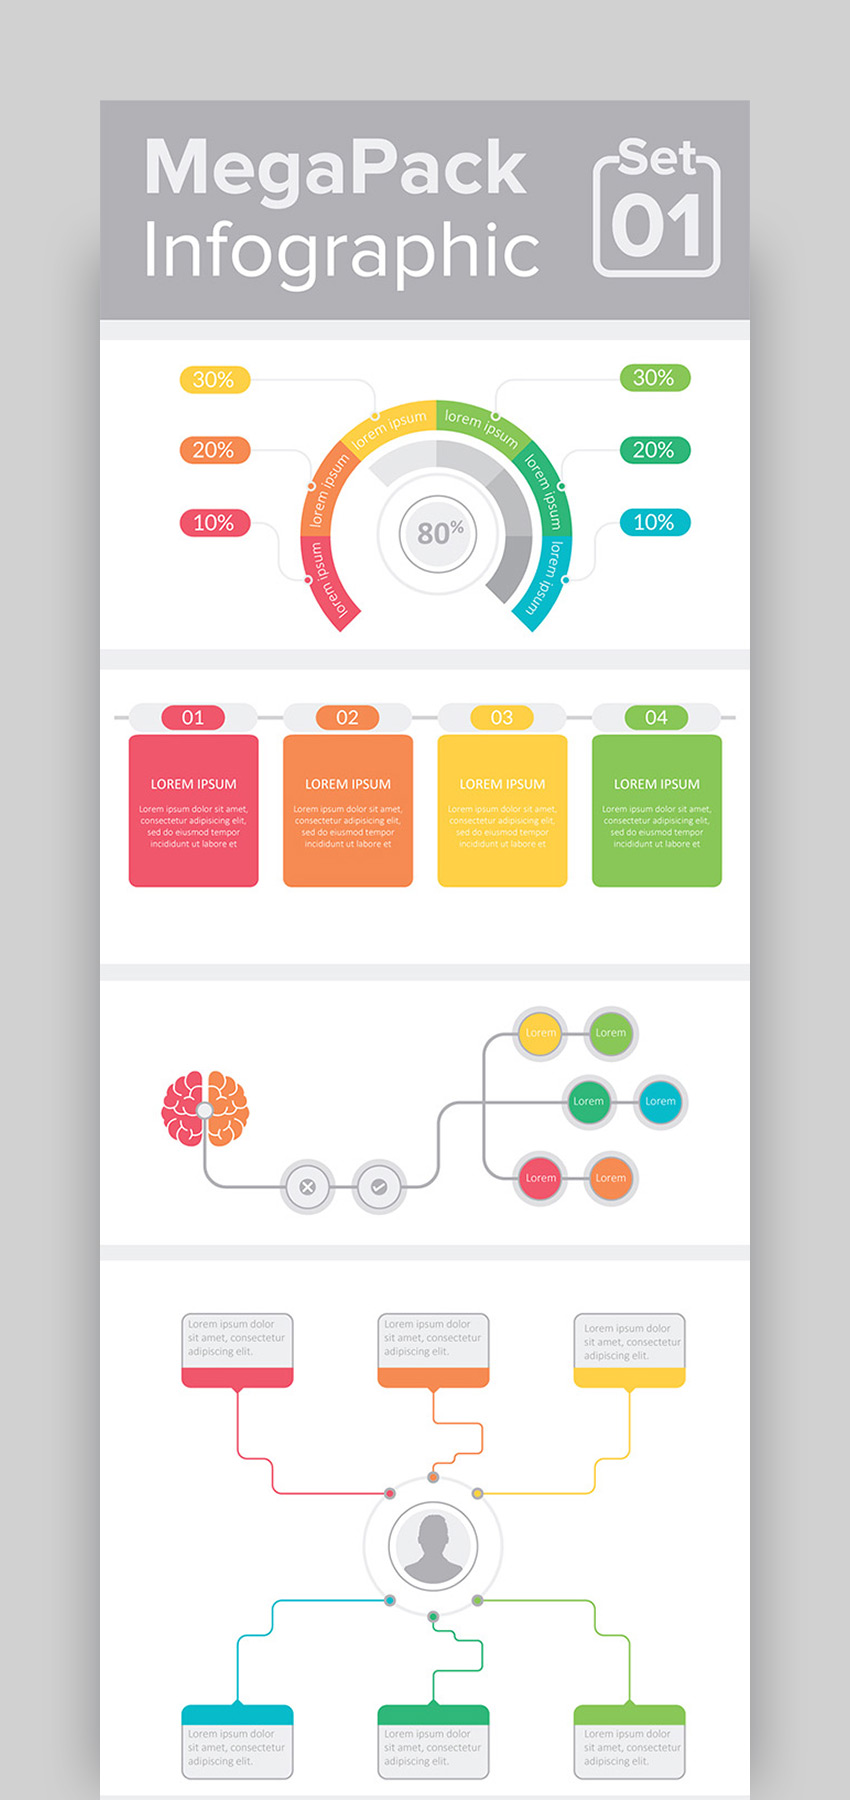 MegaPack Infographic Template Set 01